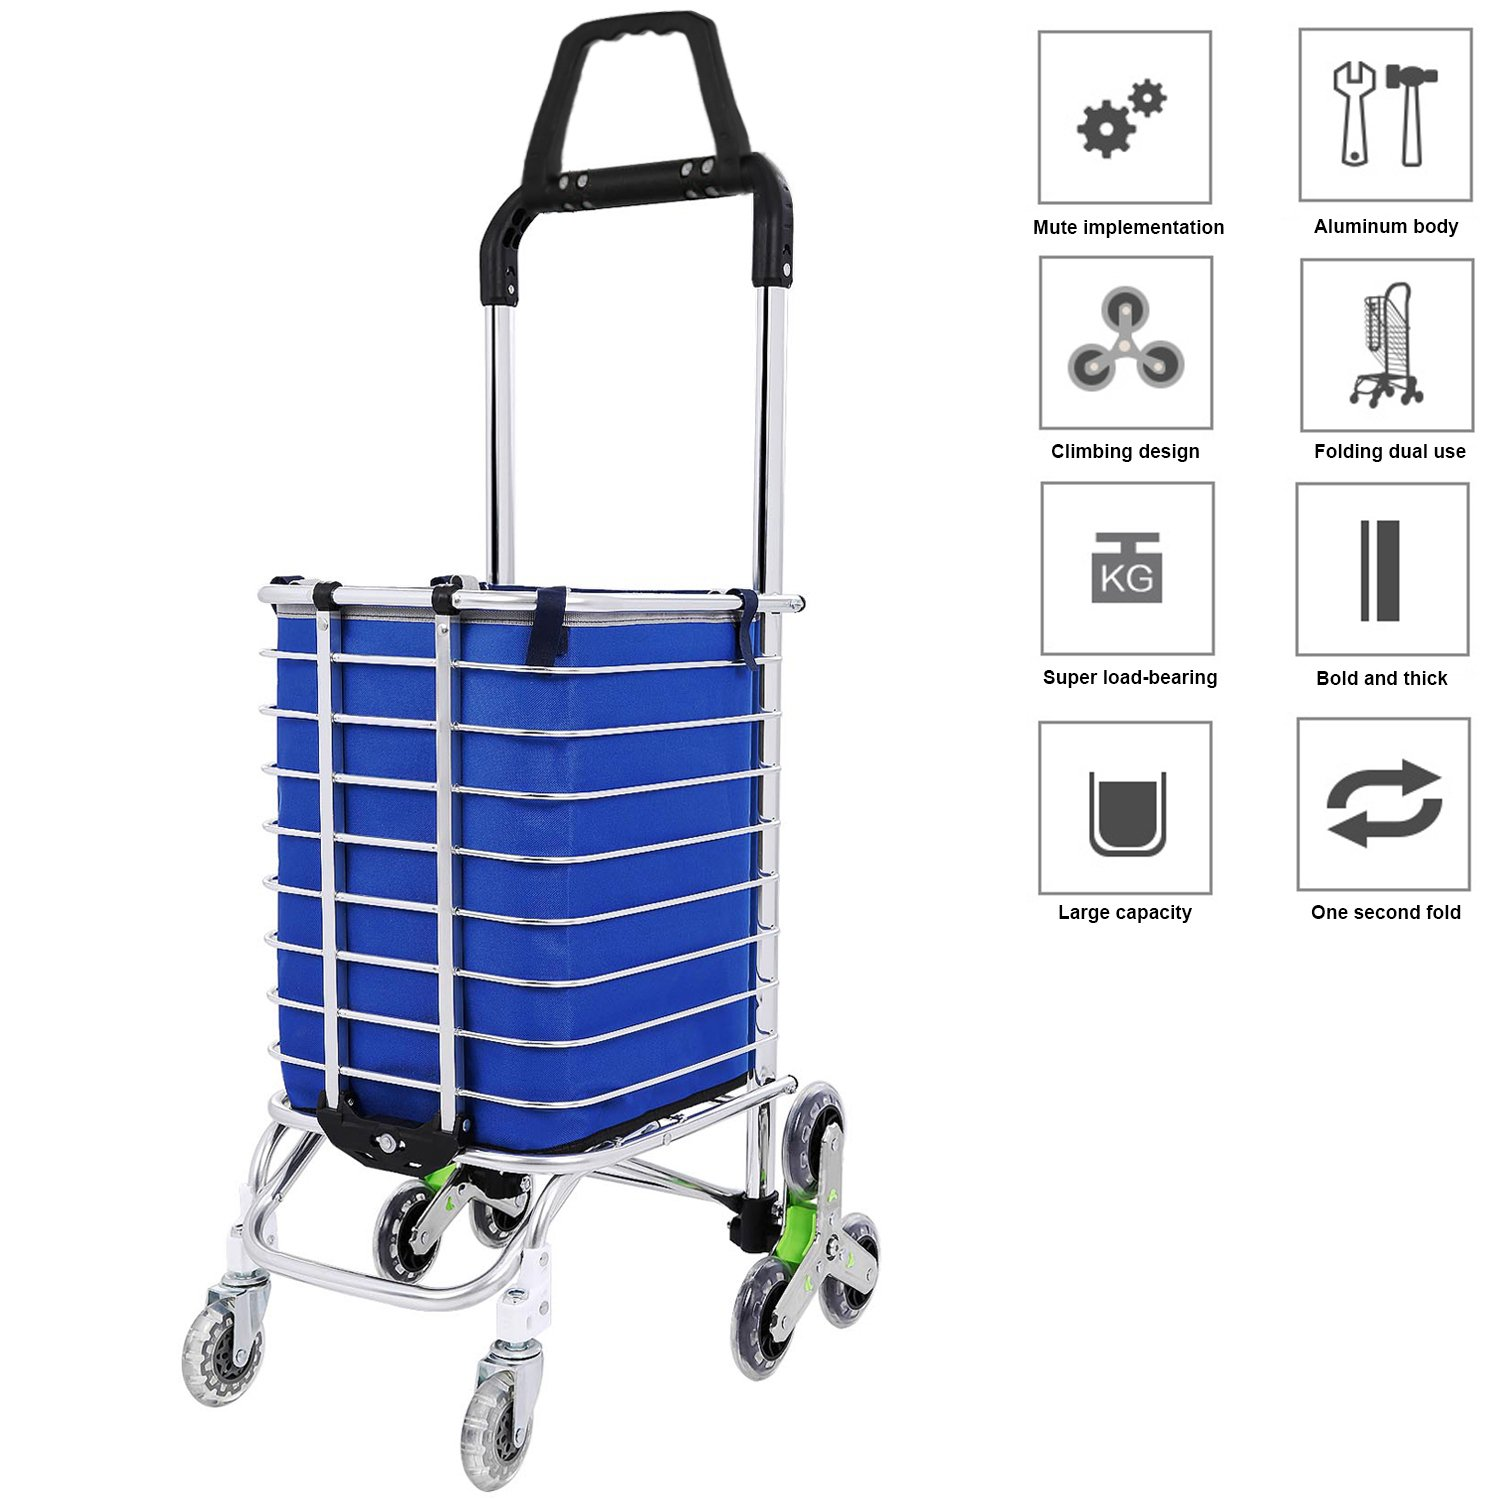 Folding Grocery Shopping Cart, Aluminum Double Handle Climbing Grocery Utility Cart with Removable Waterproof Oxford Cloth Bag and 8 Rolling Wheel for Stairs